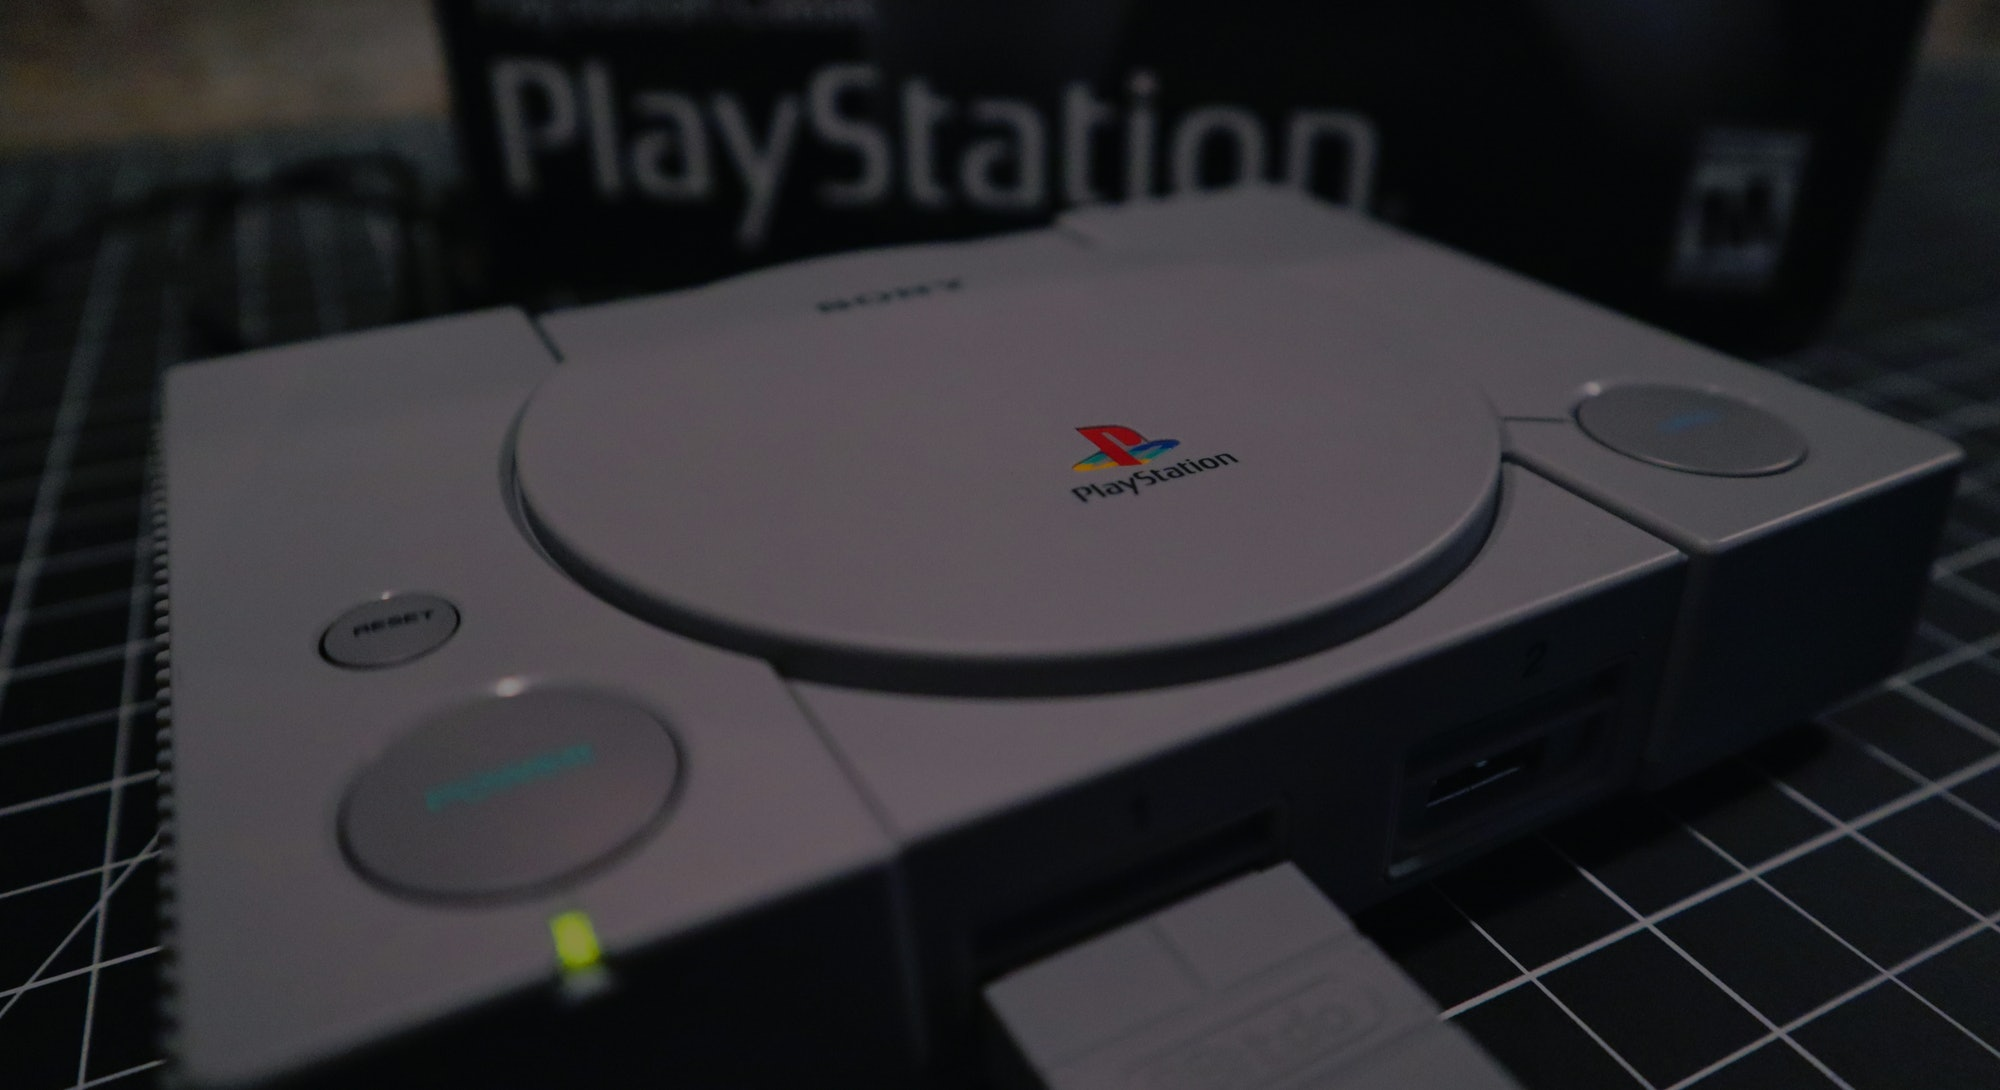 Trash to treasure: The PlayStation Classic is the ultimate retro console once you hack it